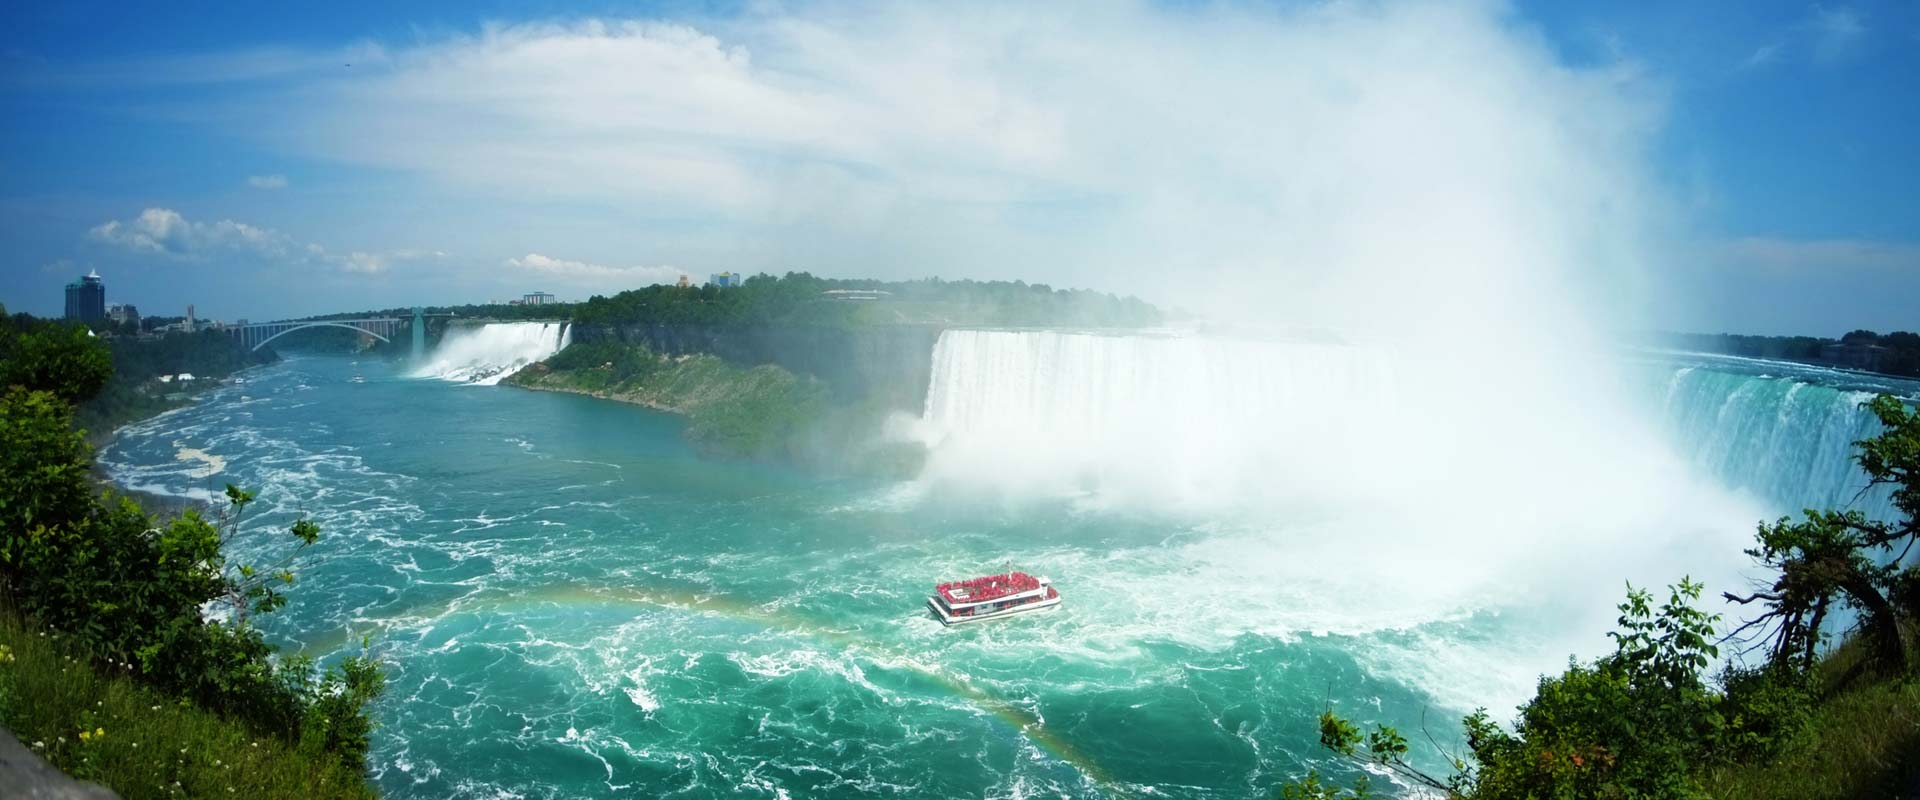 Hornblower Niagara Cruises – Daily Schedule and Tickets